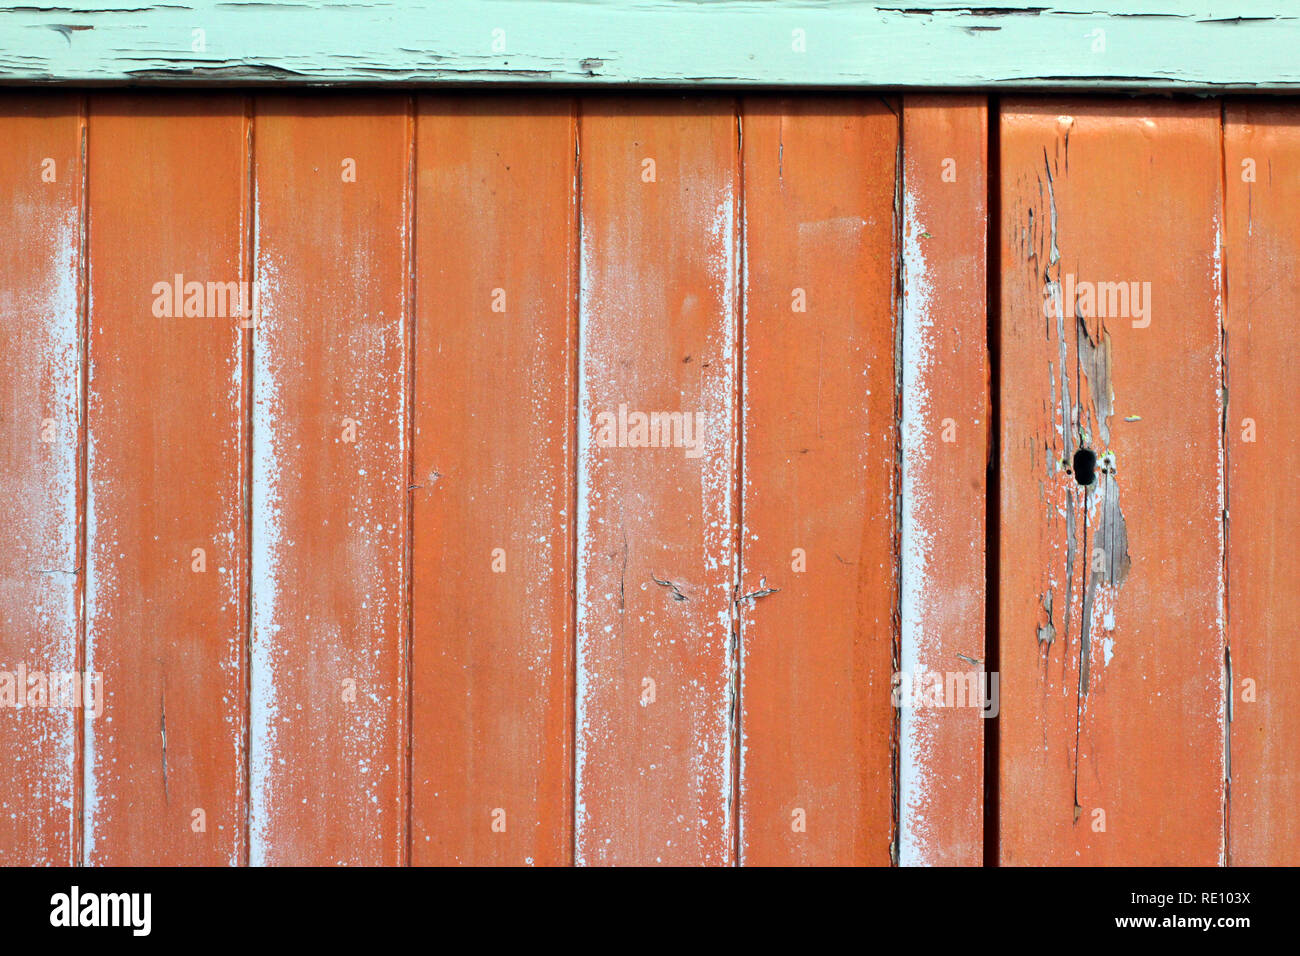 Colorful wooden hut Brighton, England, close-up Stock Photo